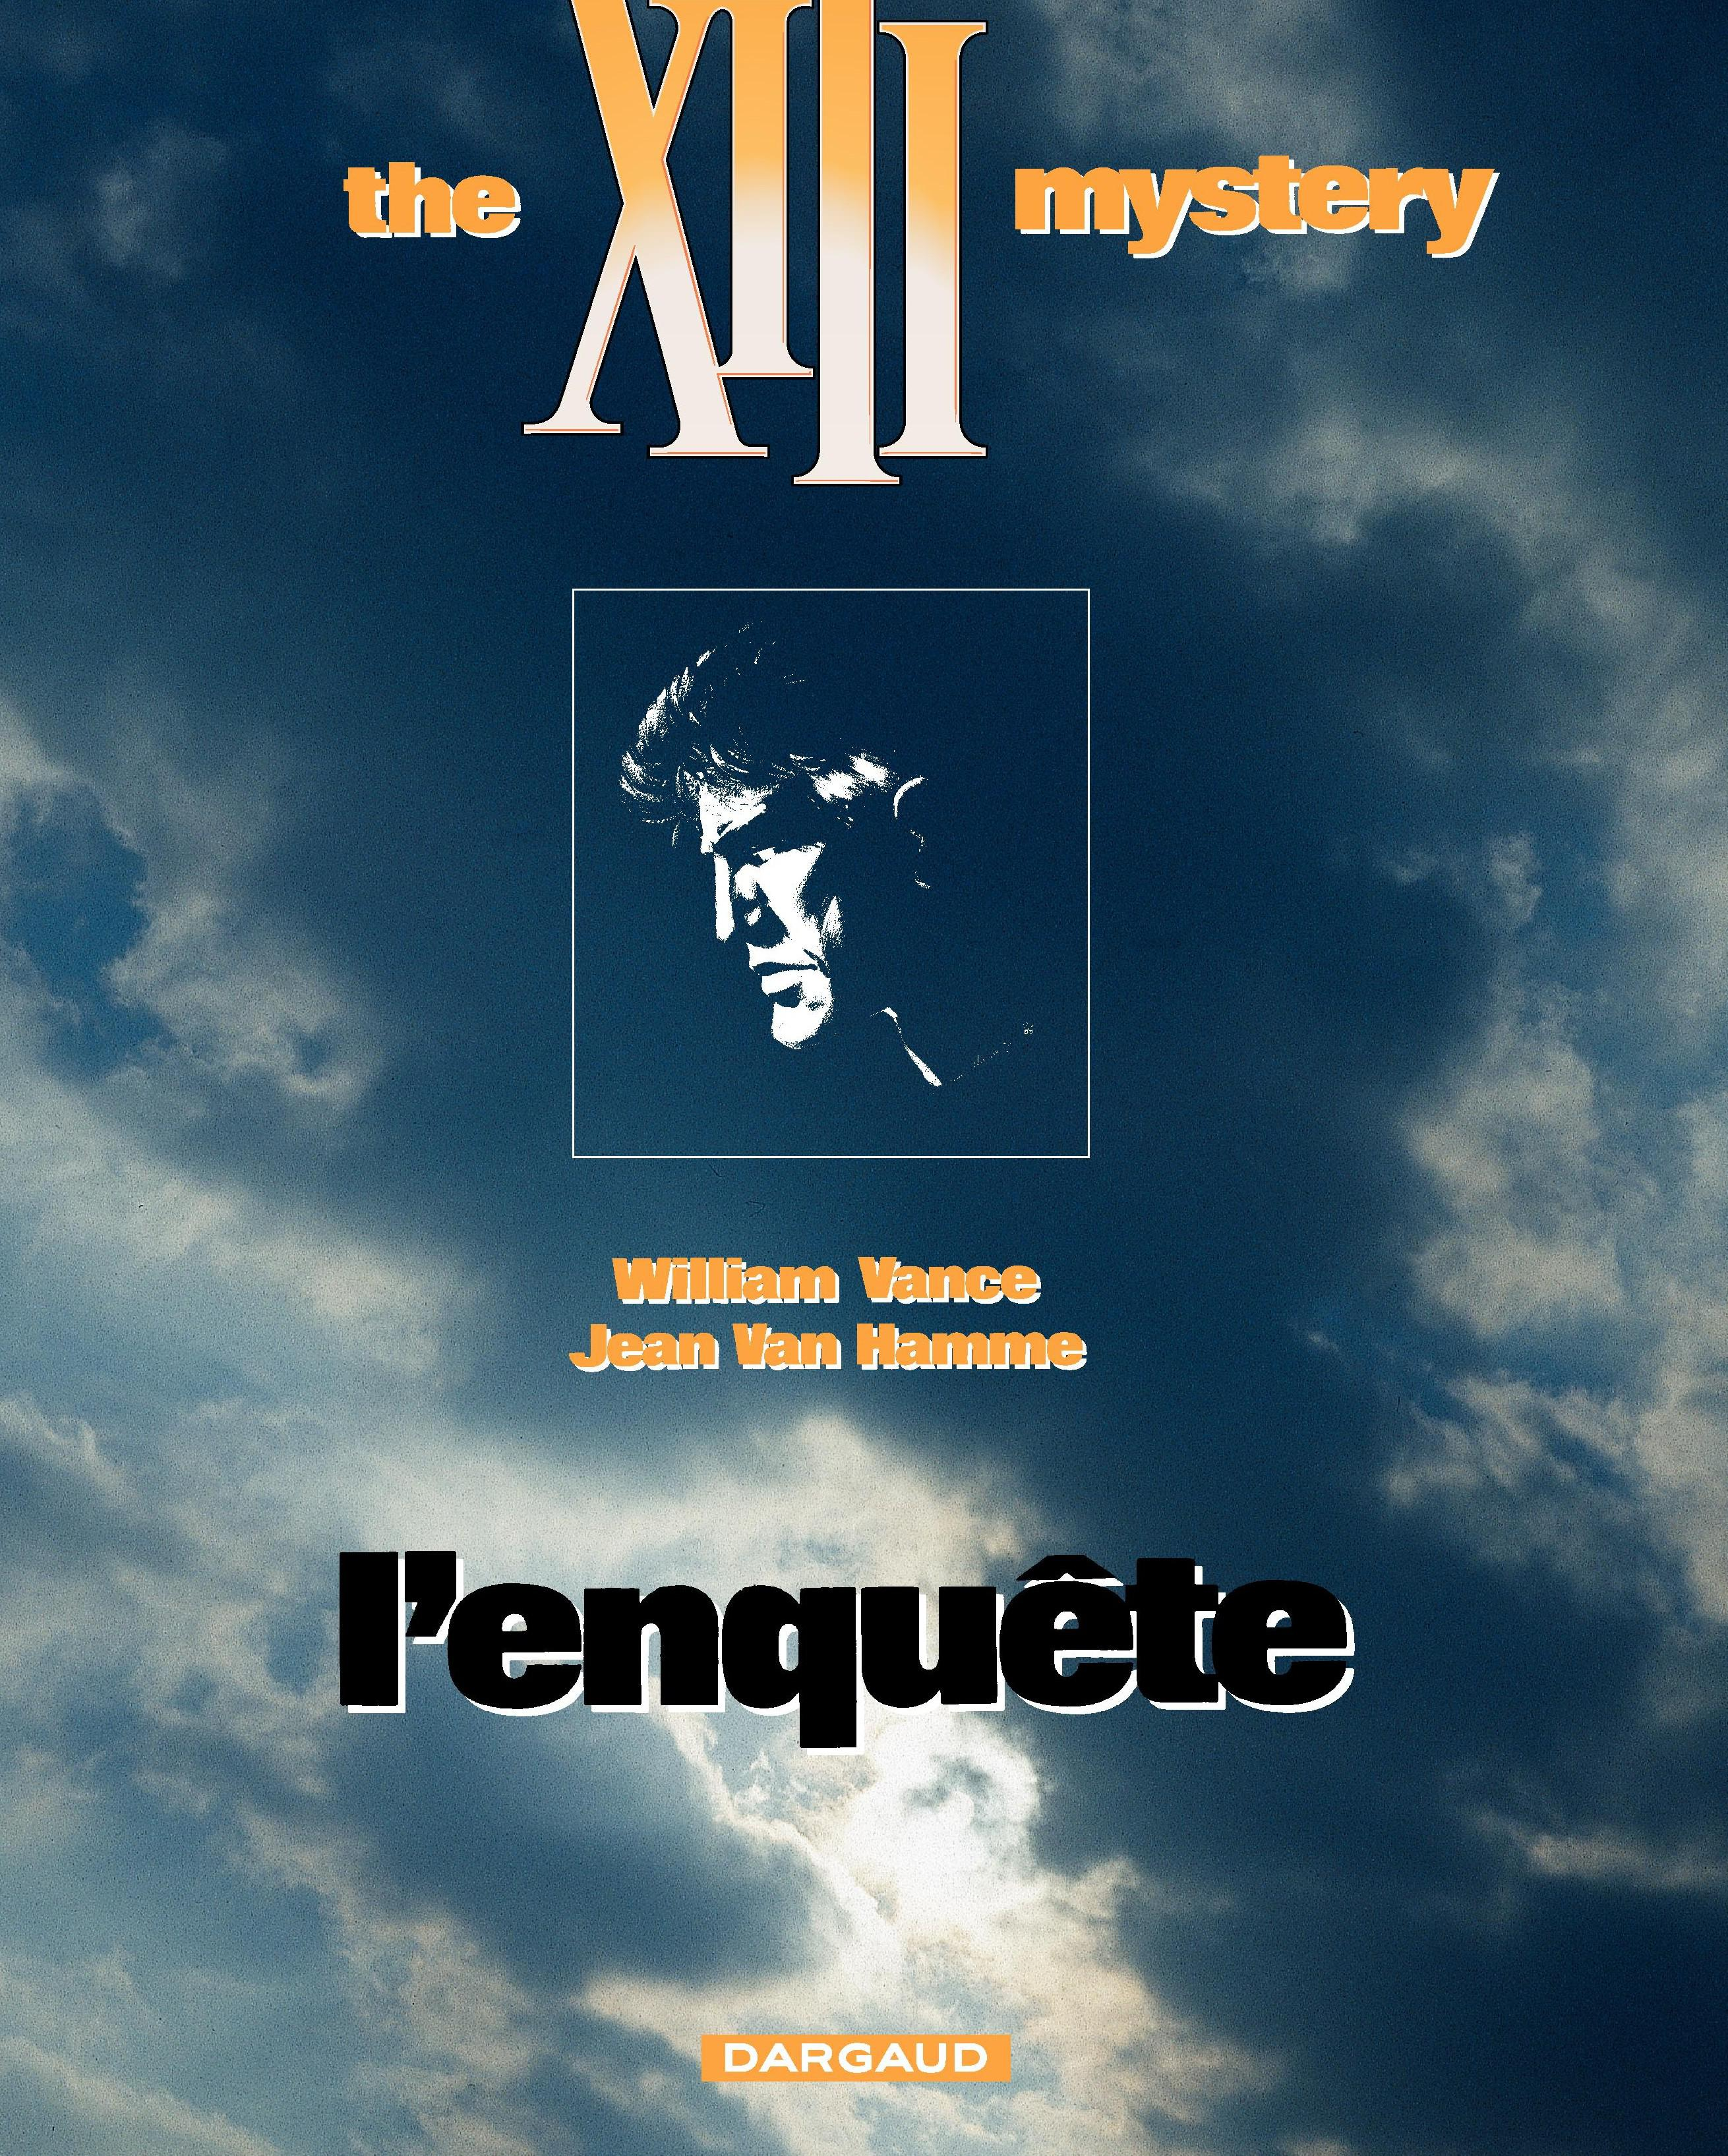 XIII - tome 13 - The XIII mystery : L'enquête